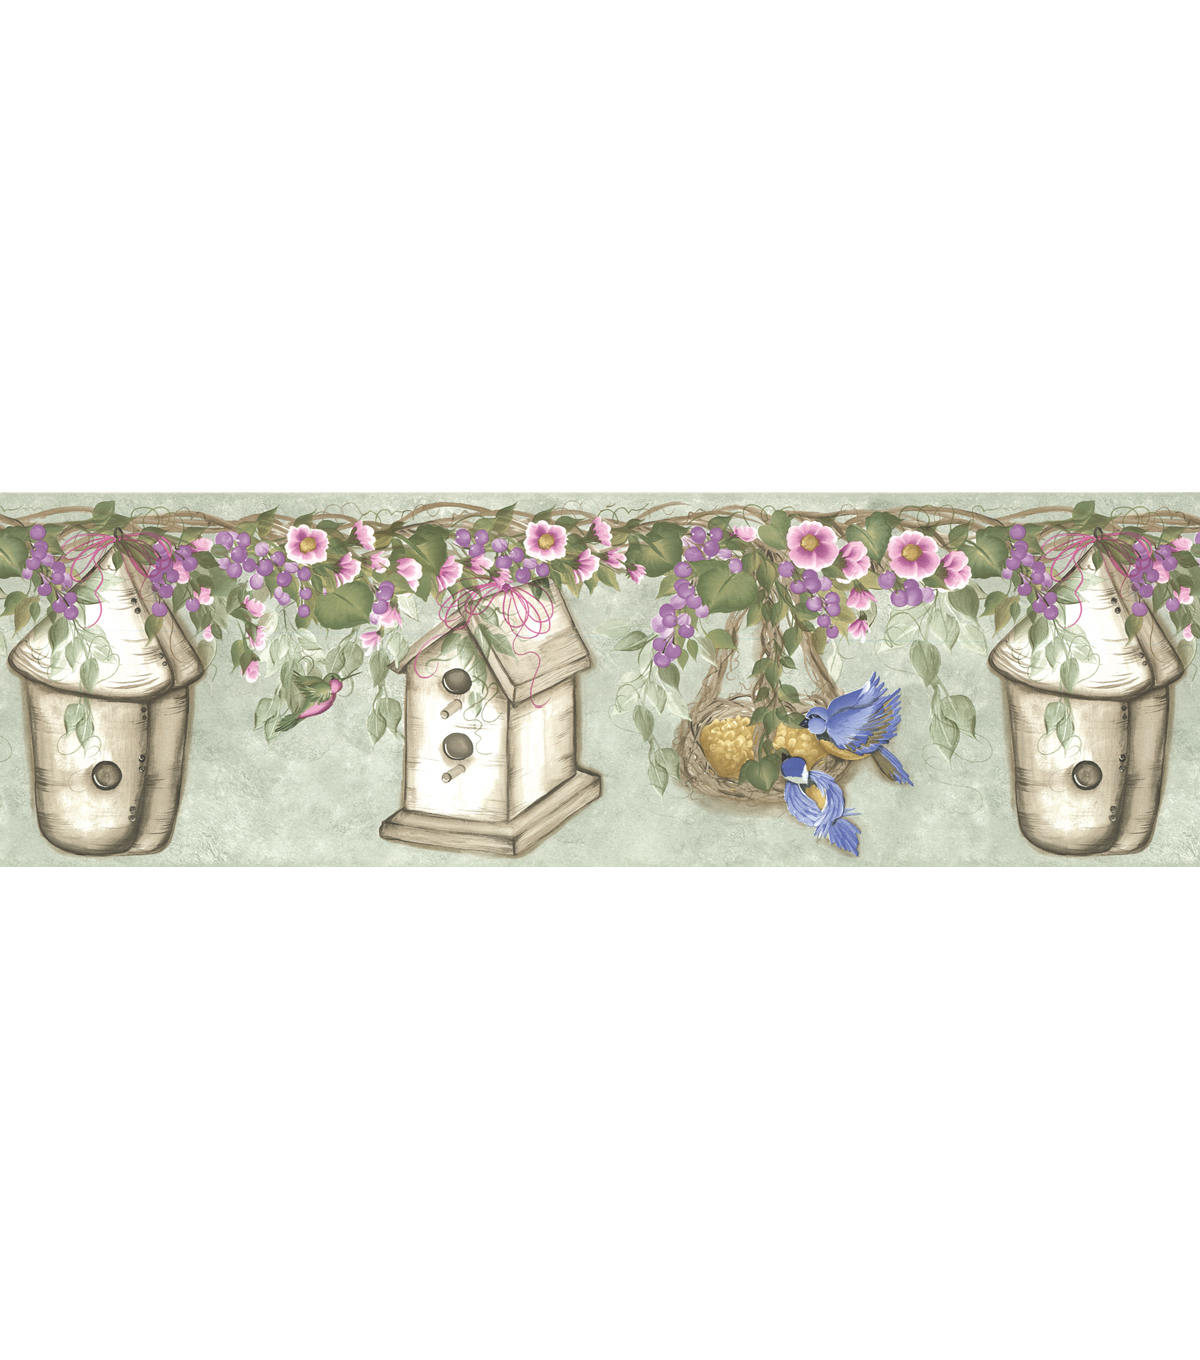 Bird House Floral Wallpaper Border Green SampleWhimsical Bird 1200x1360